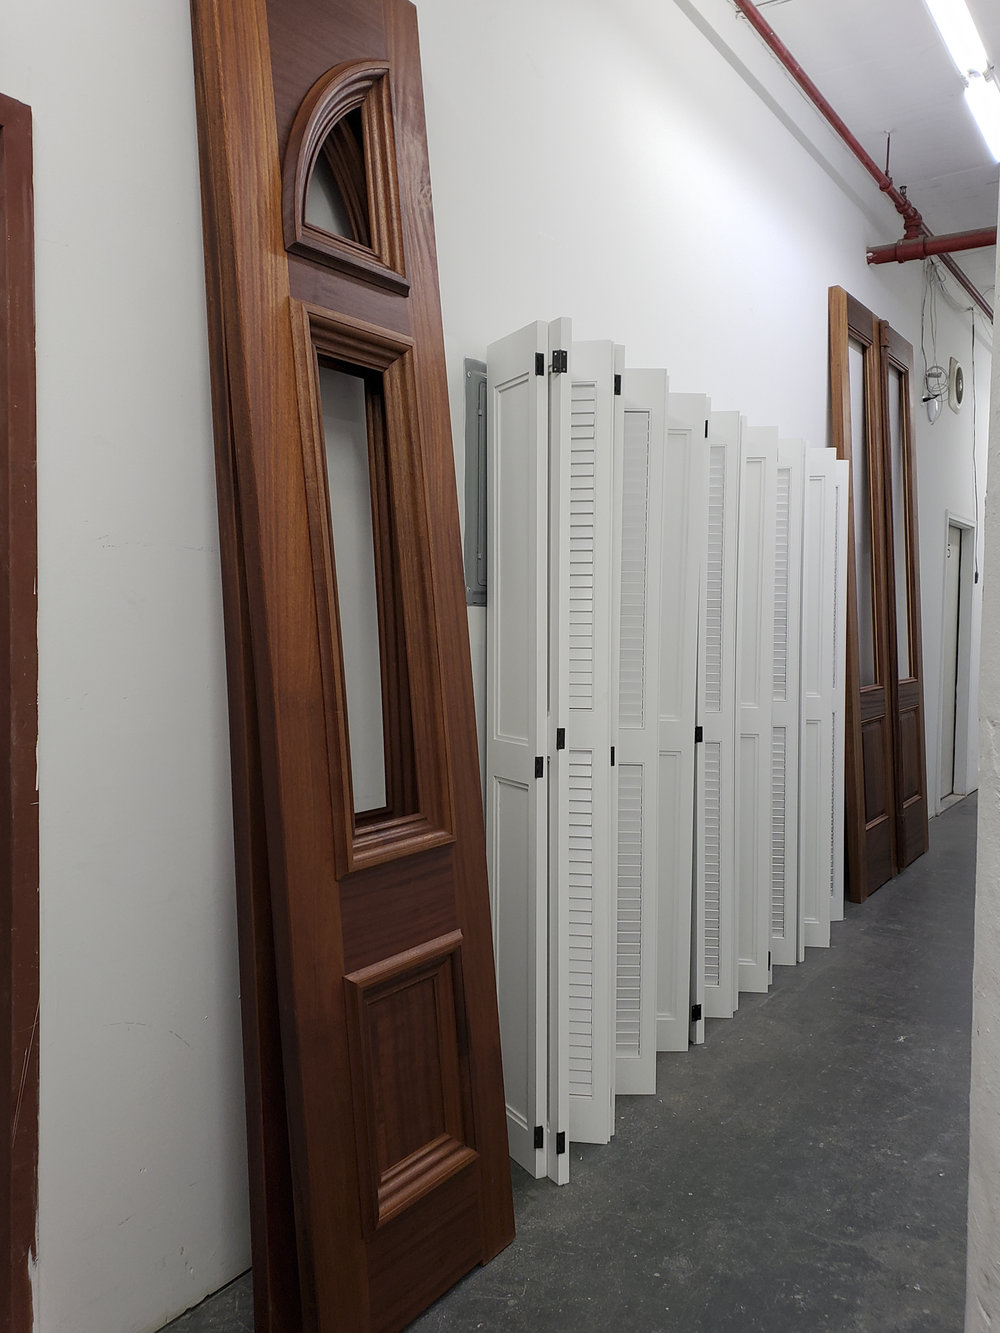 ENTRY DOORS AND LARGE POCKET SHUTTERS